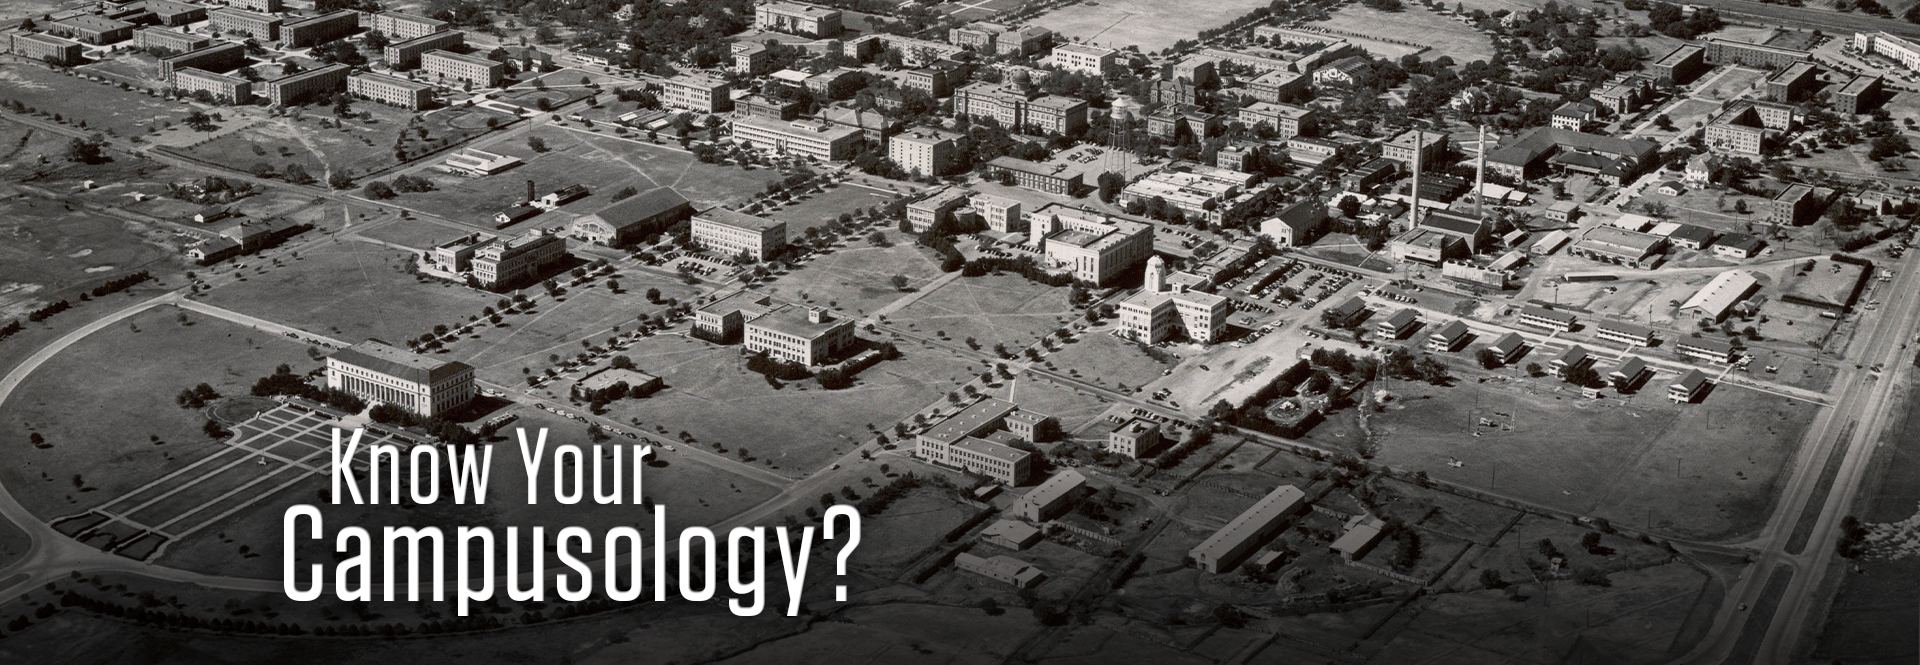 Take our Aggie history quiz with questions derived from Aggie campusology booklets!